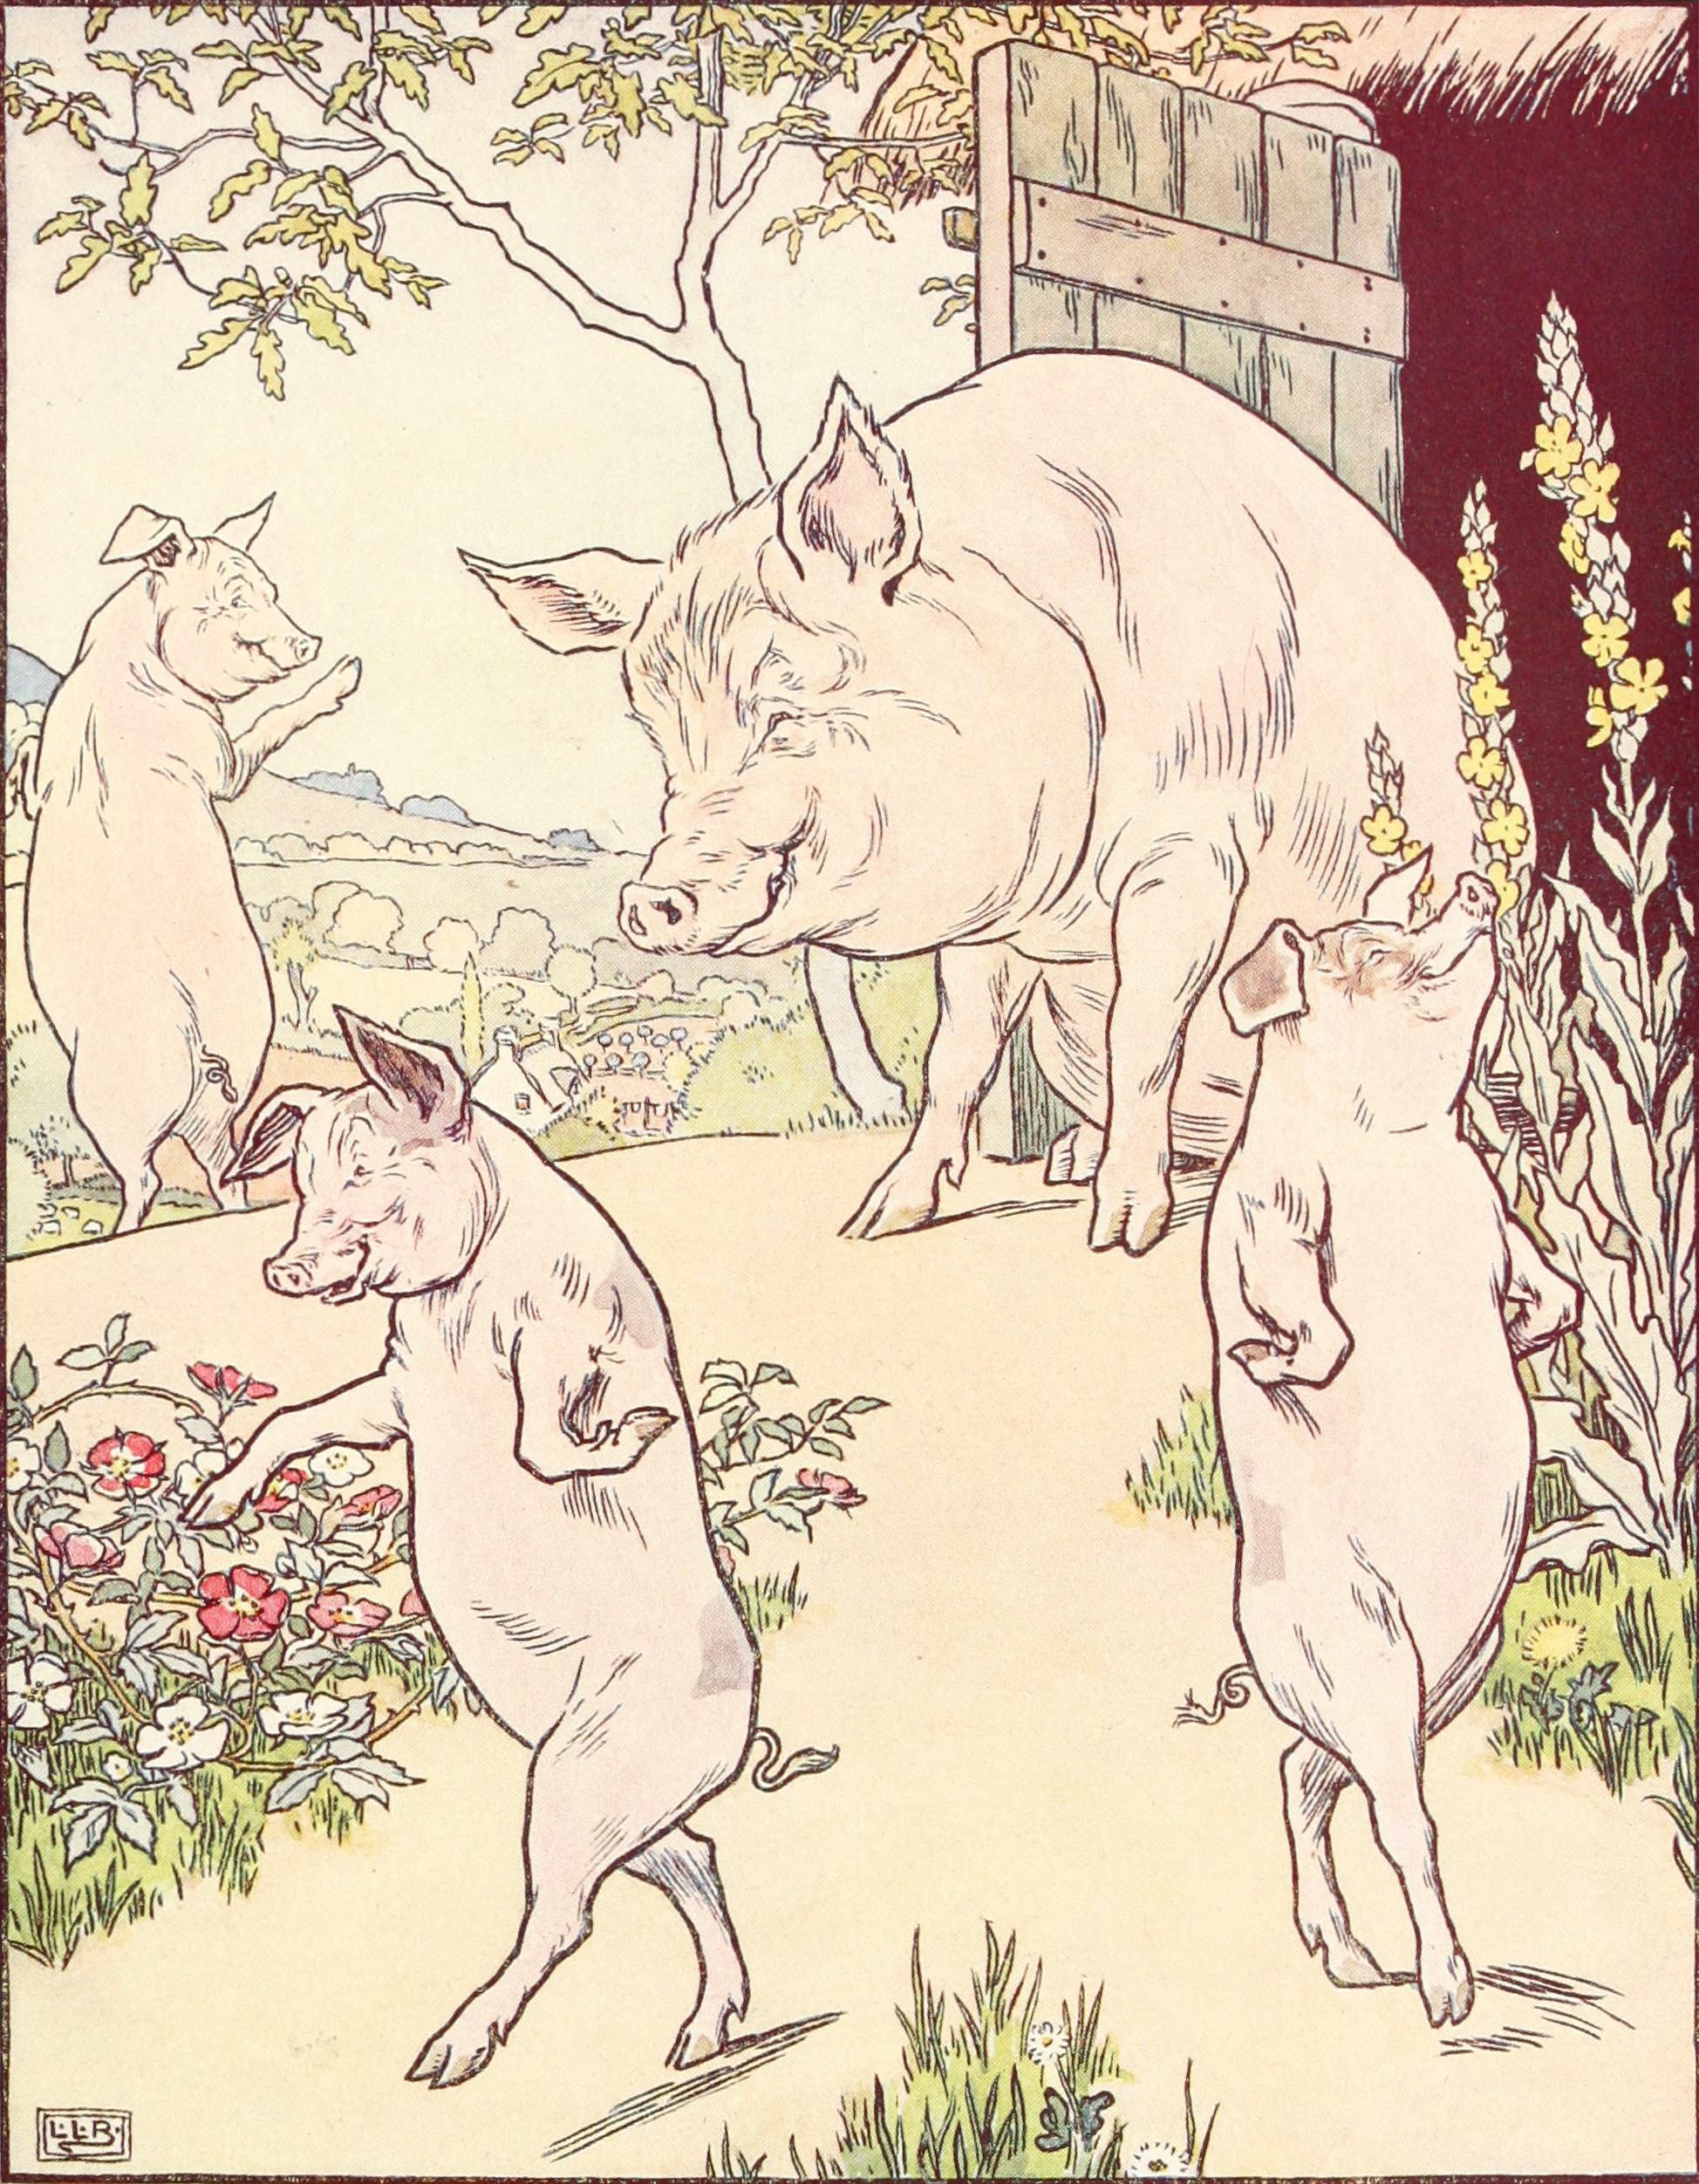 File:Three little pigs and mother sow - Project Gutenberg eText 15661.jpg